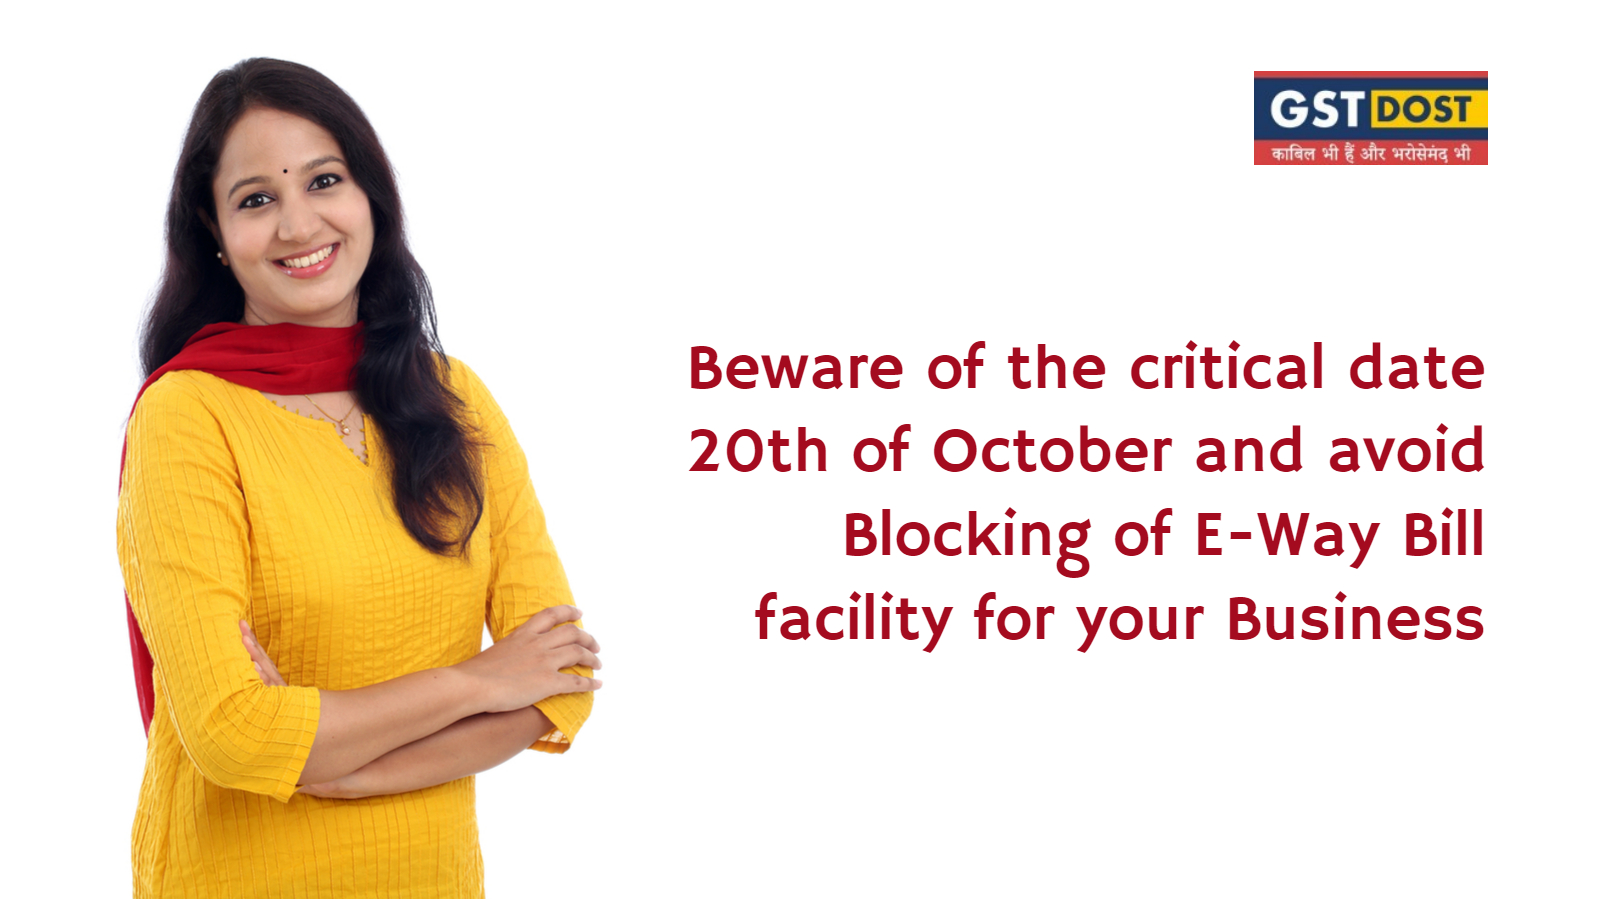 Beware of the critical date 20th of October and avoid blocking of E-Way Bill facility for your Business